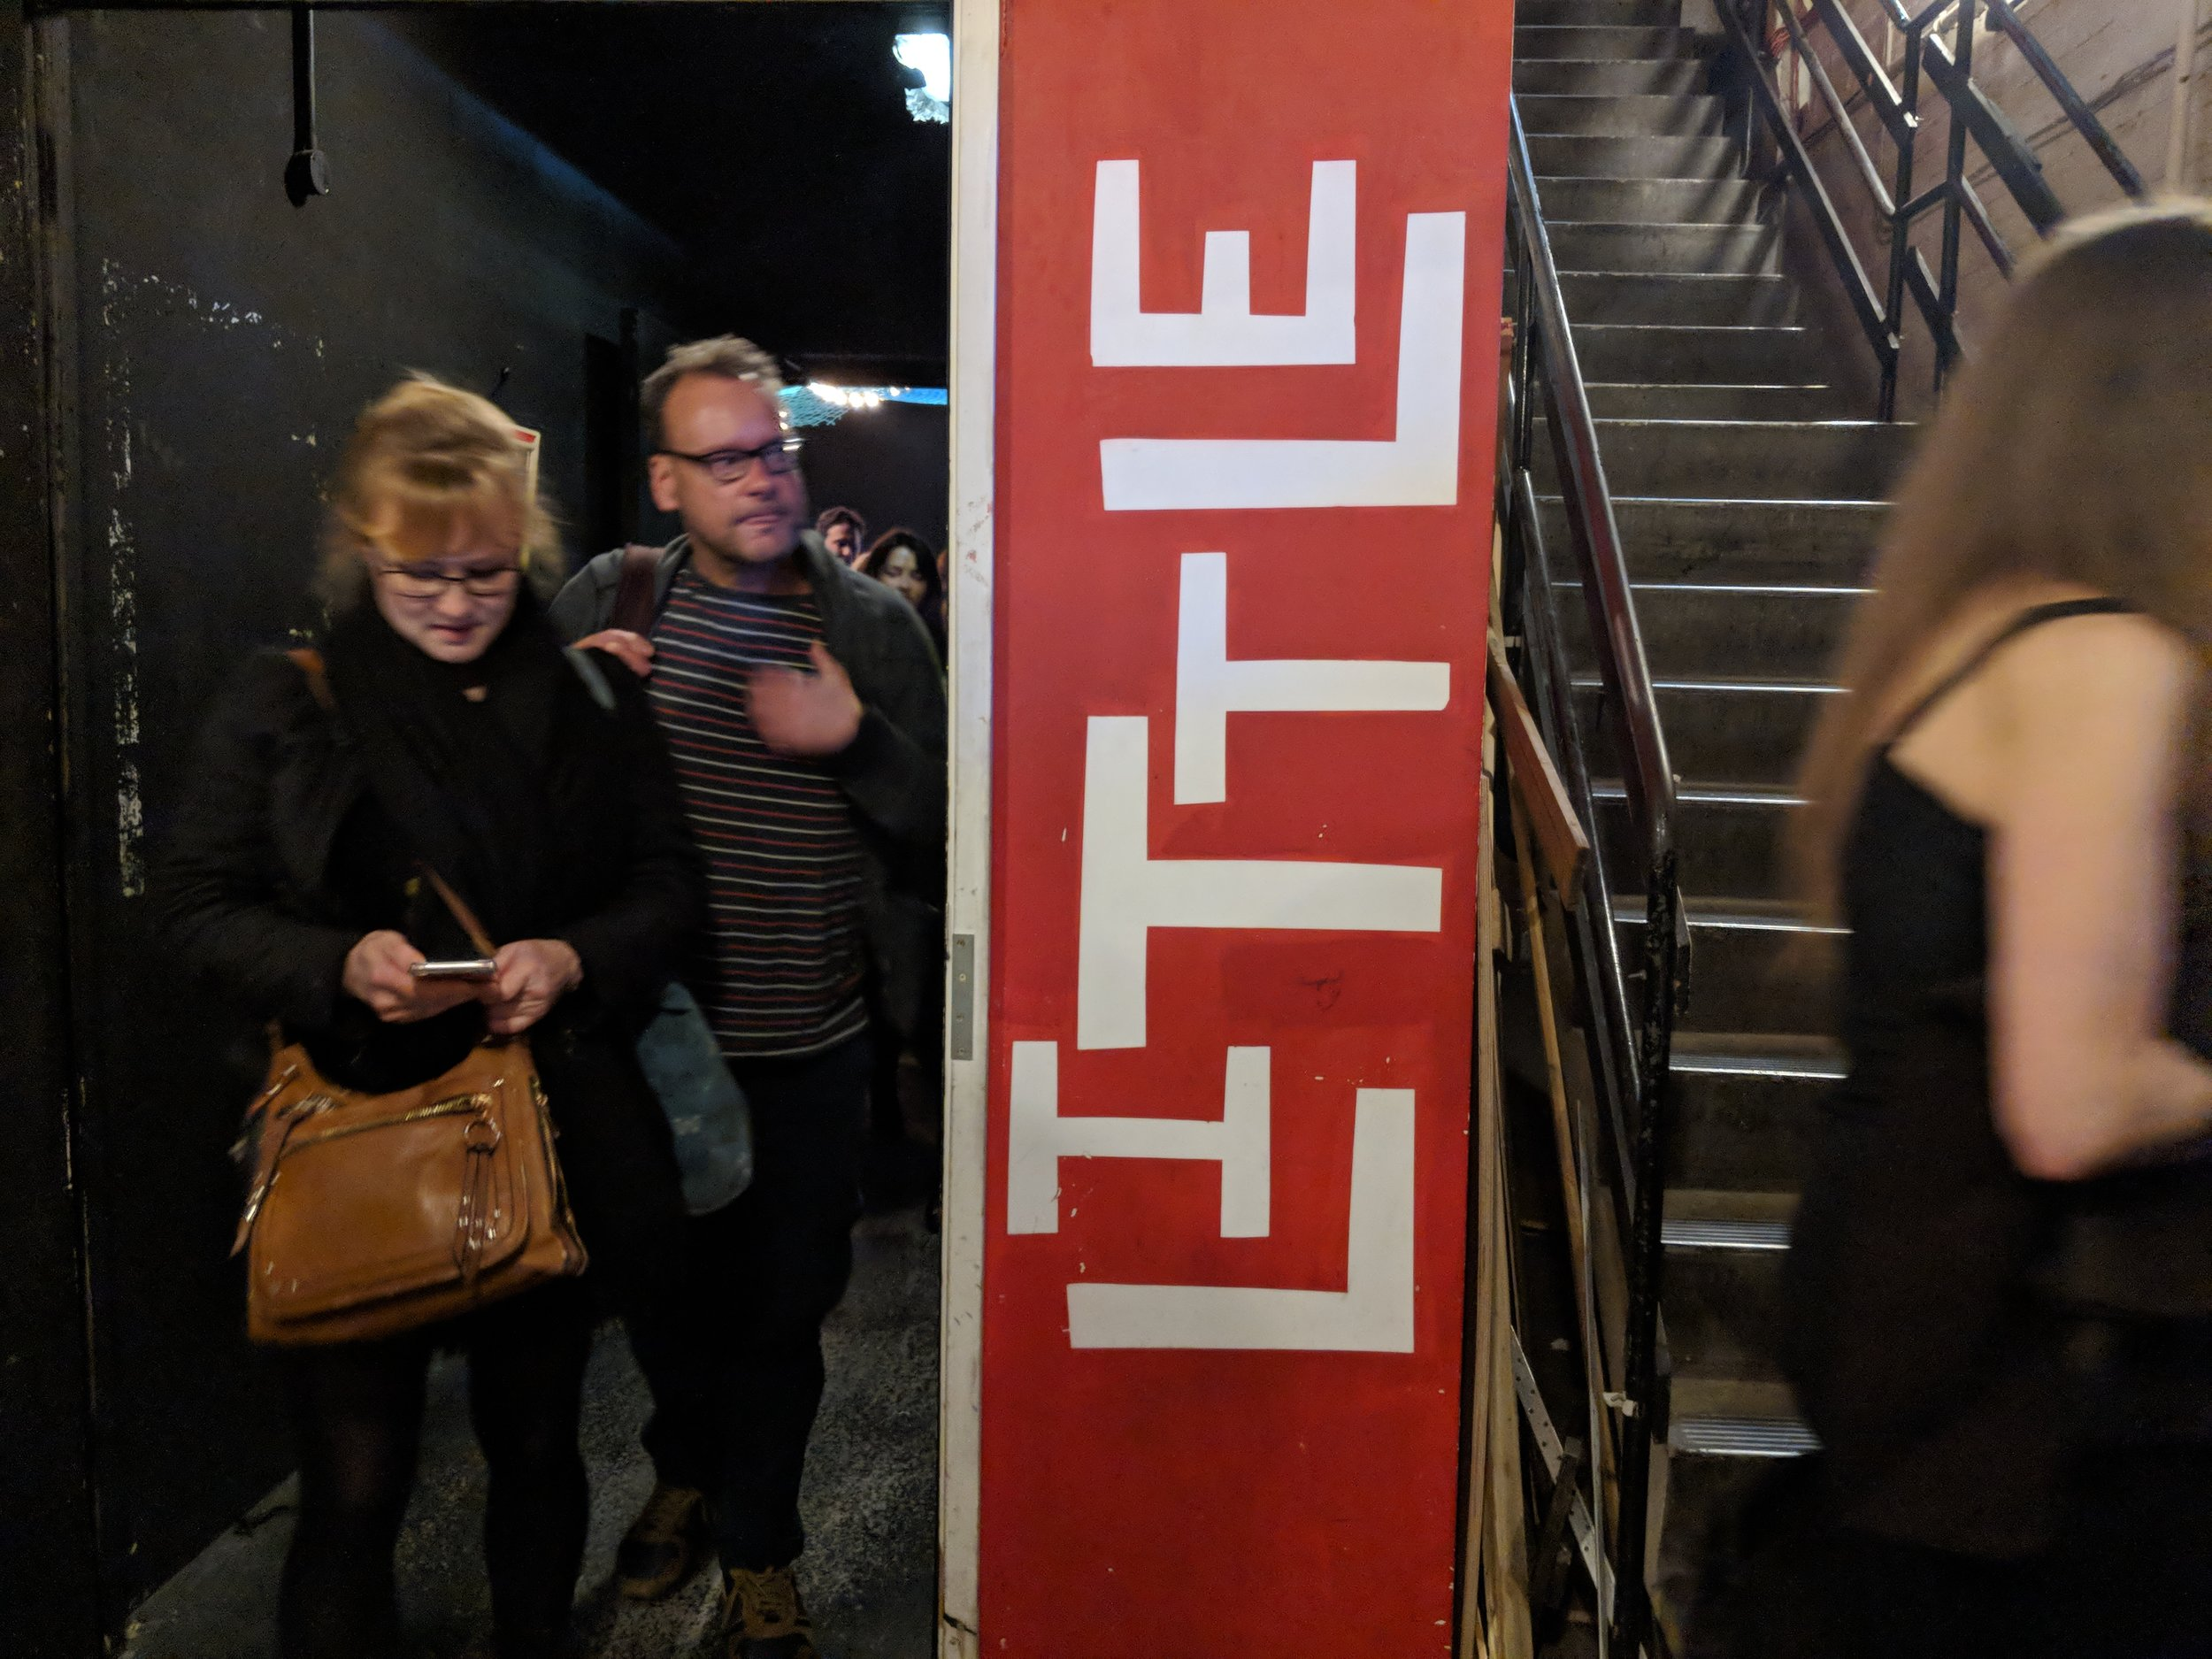 Southwark Playhouse(The Little) - visited 17/05/2019